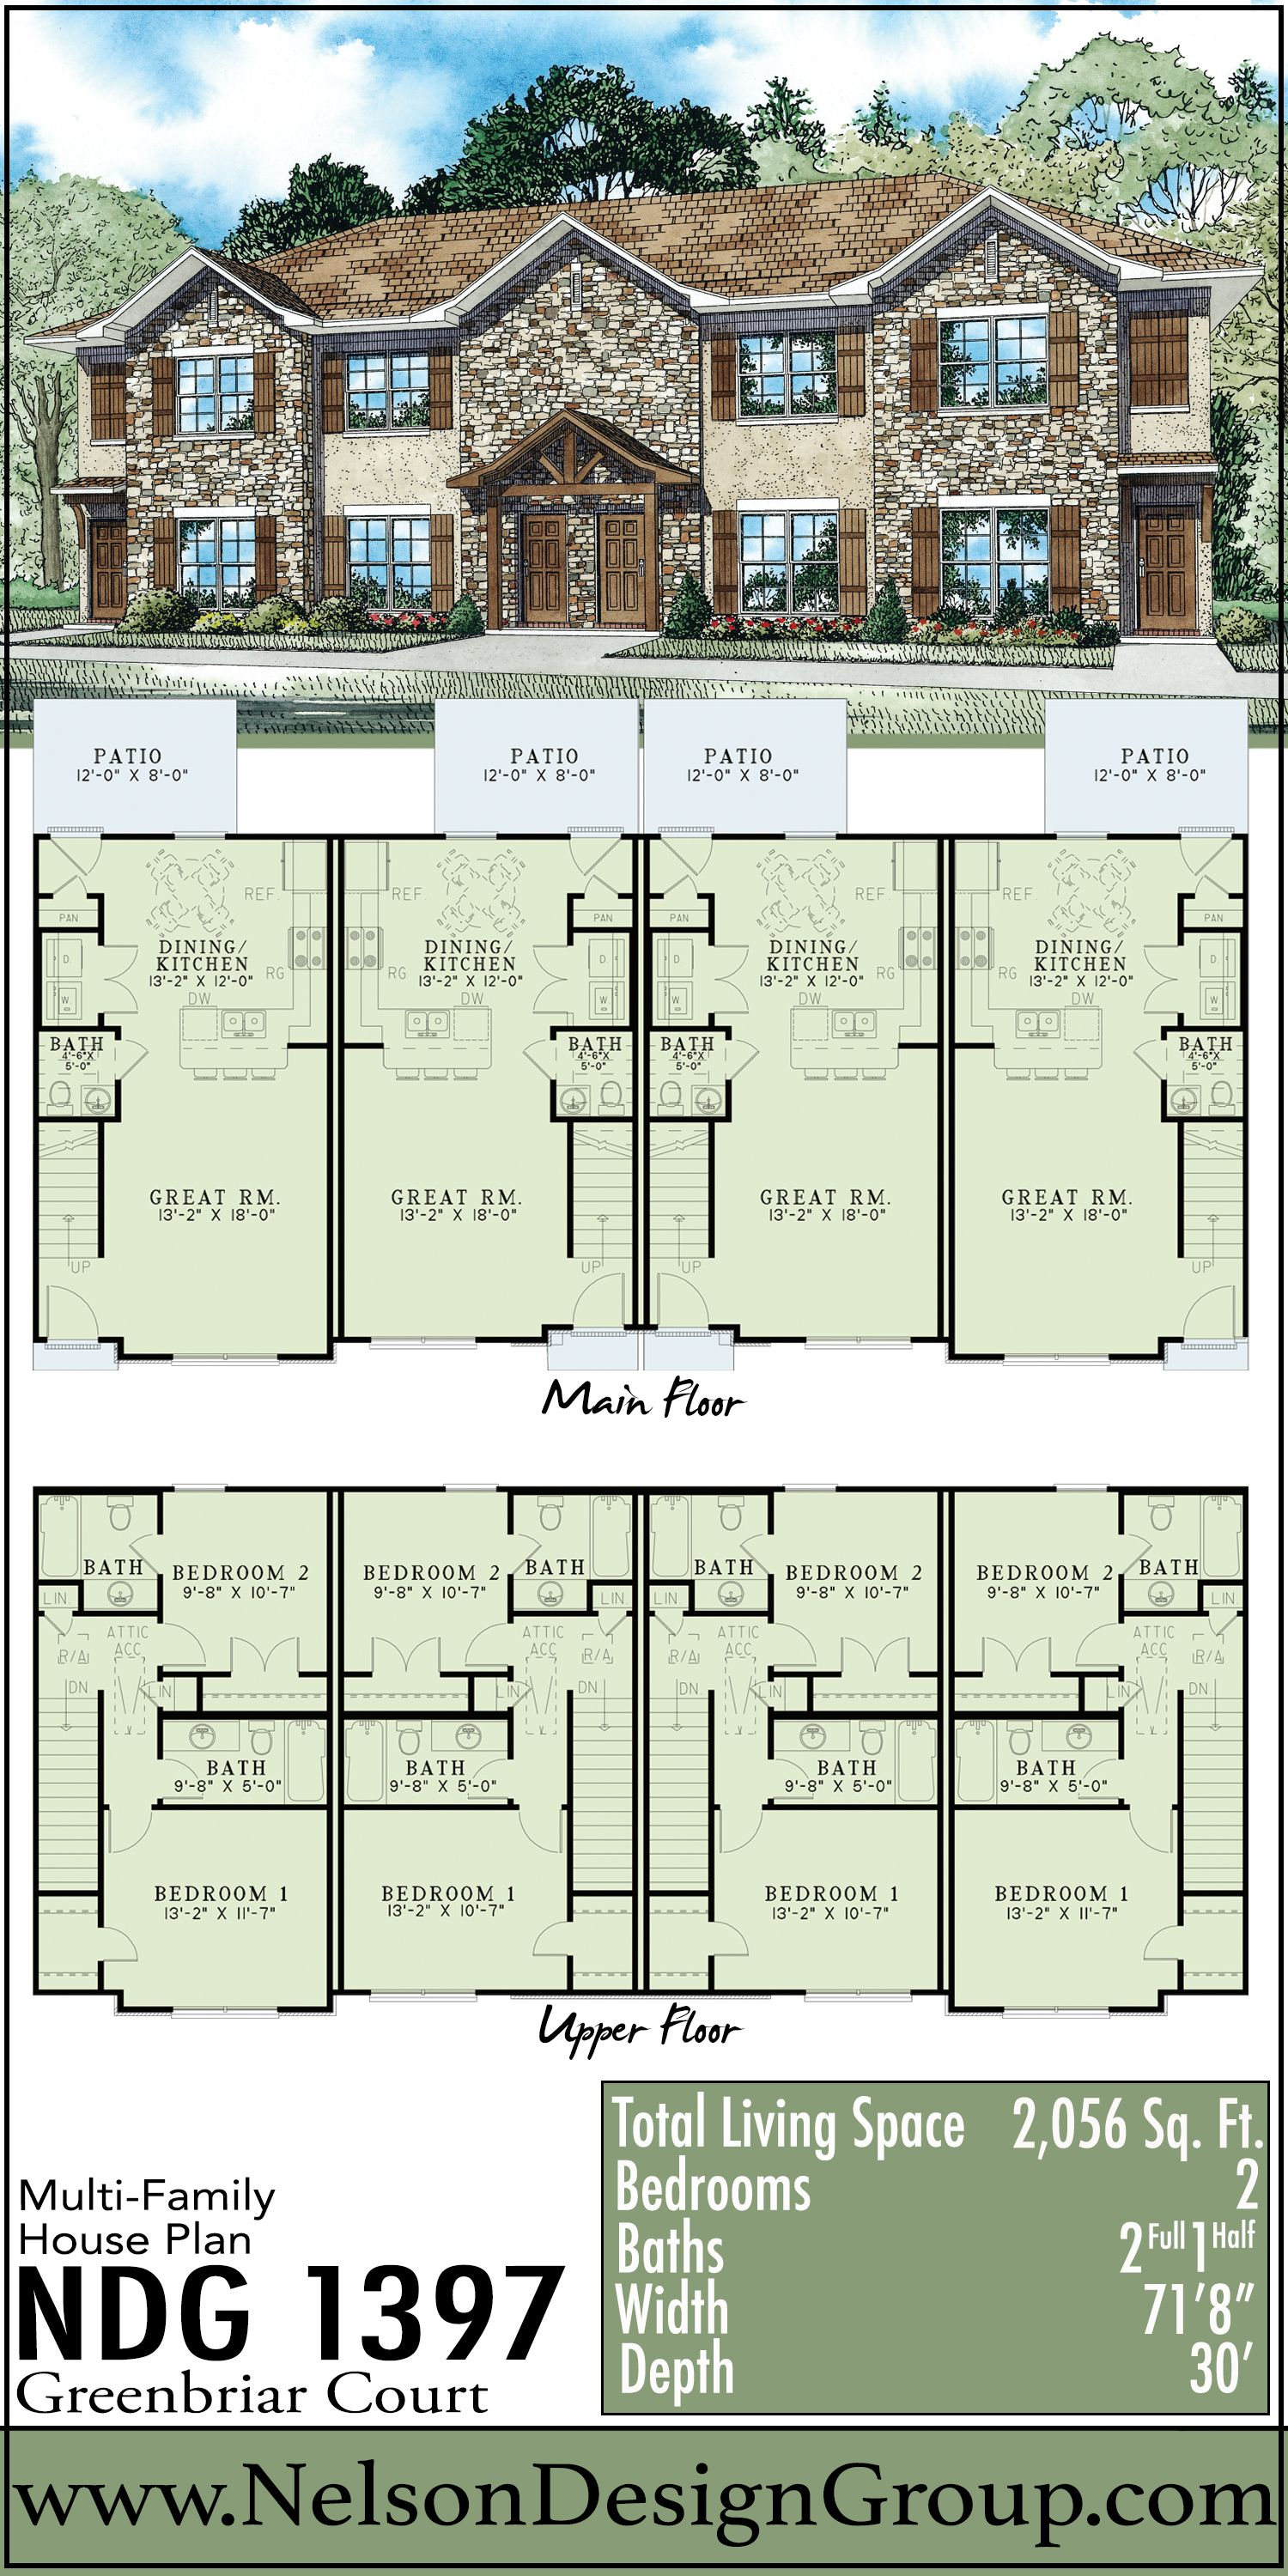 House Houses Homes Home Homeplans Houseplans Luxury Luxuryhouseplans Luxuryhomeplans Dreamhomes Family House Plans House Plans Beautiful House Plans